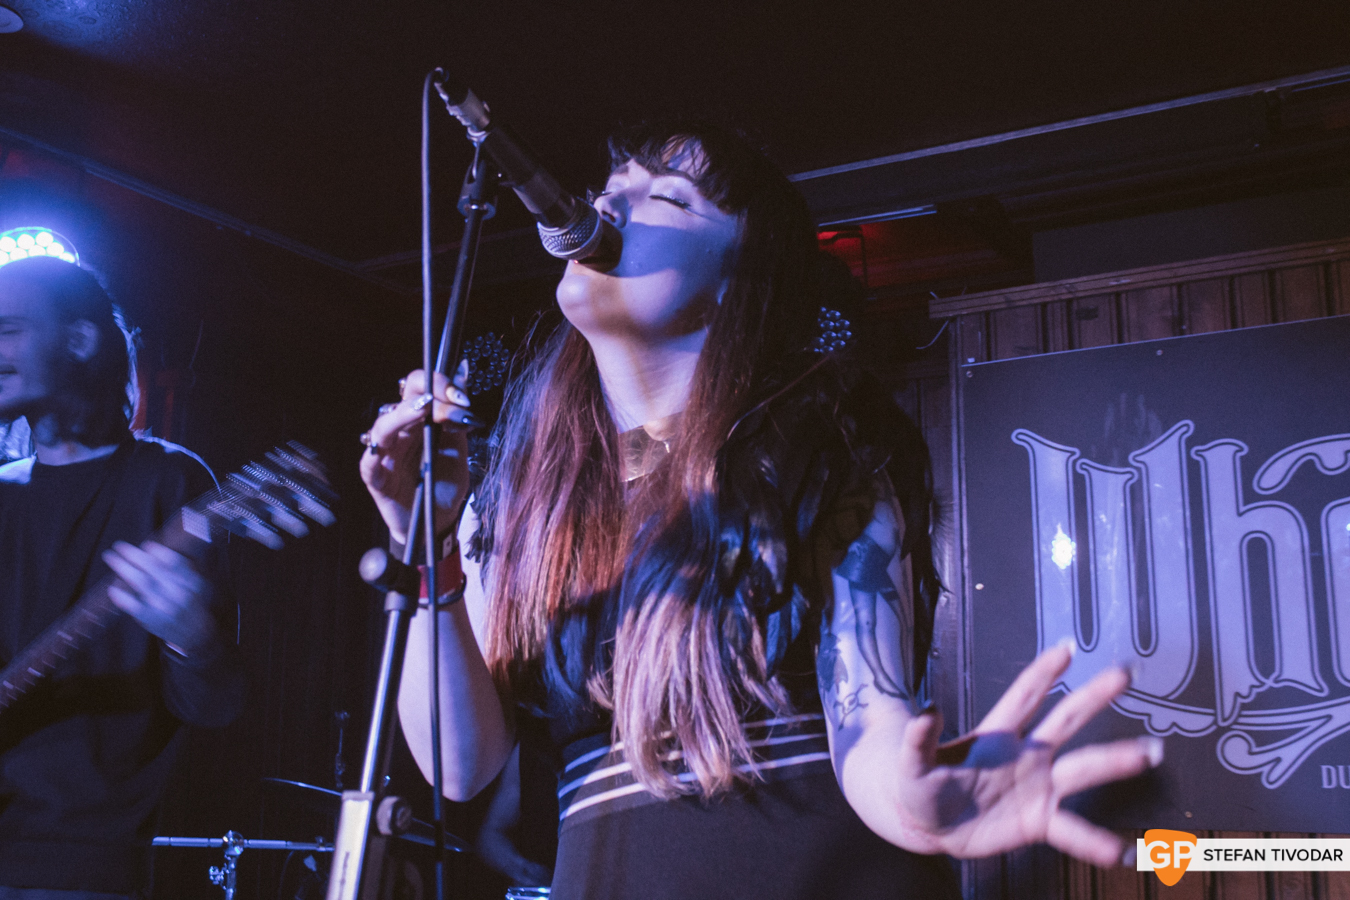 Pecking Party Whelans Ones to Watch Winter 2019 Day Whelans Ones to Watch Winter 2019 Day 5 4